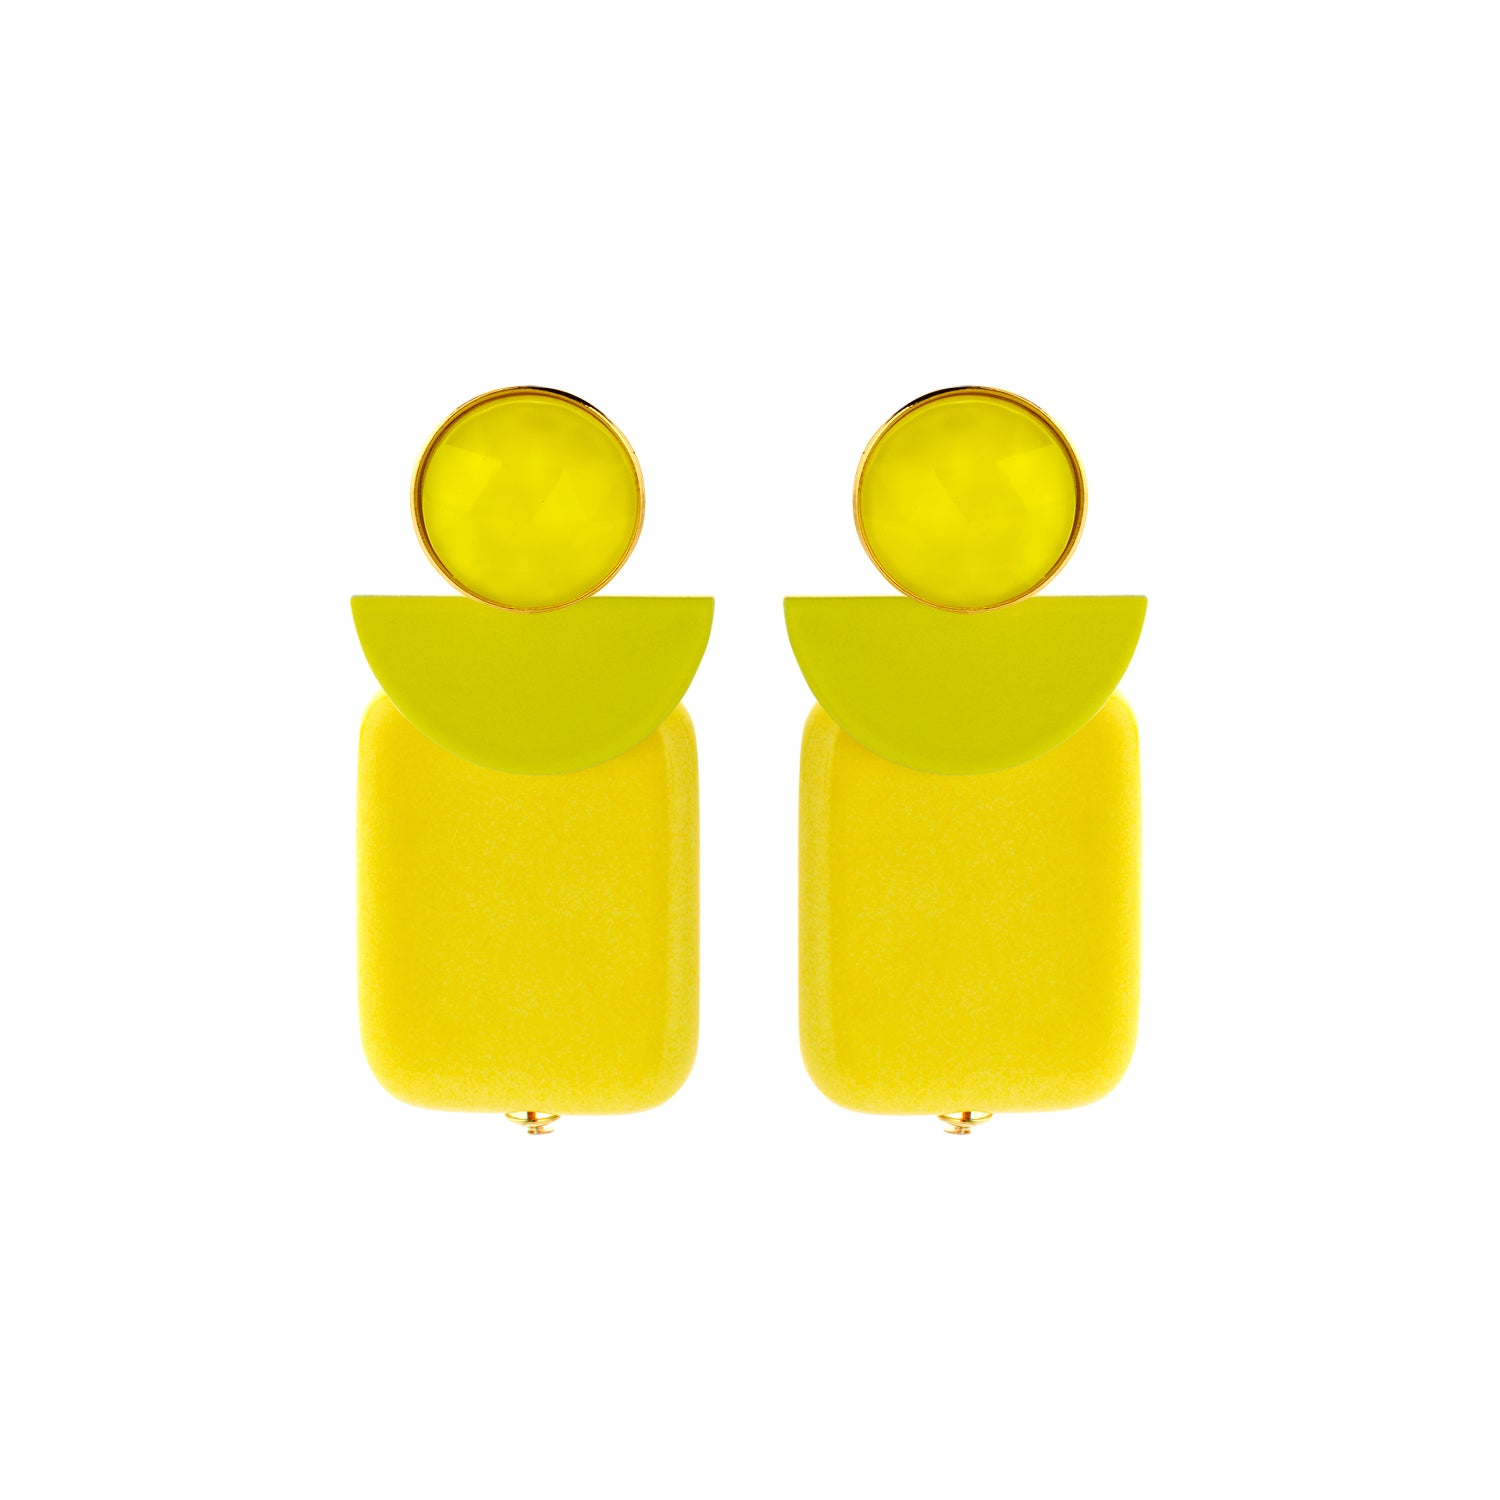 Attina moon yellow earrings - Souvenirs de Pomme